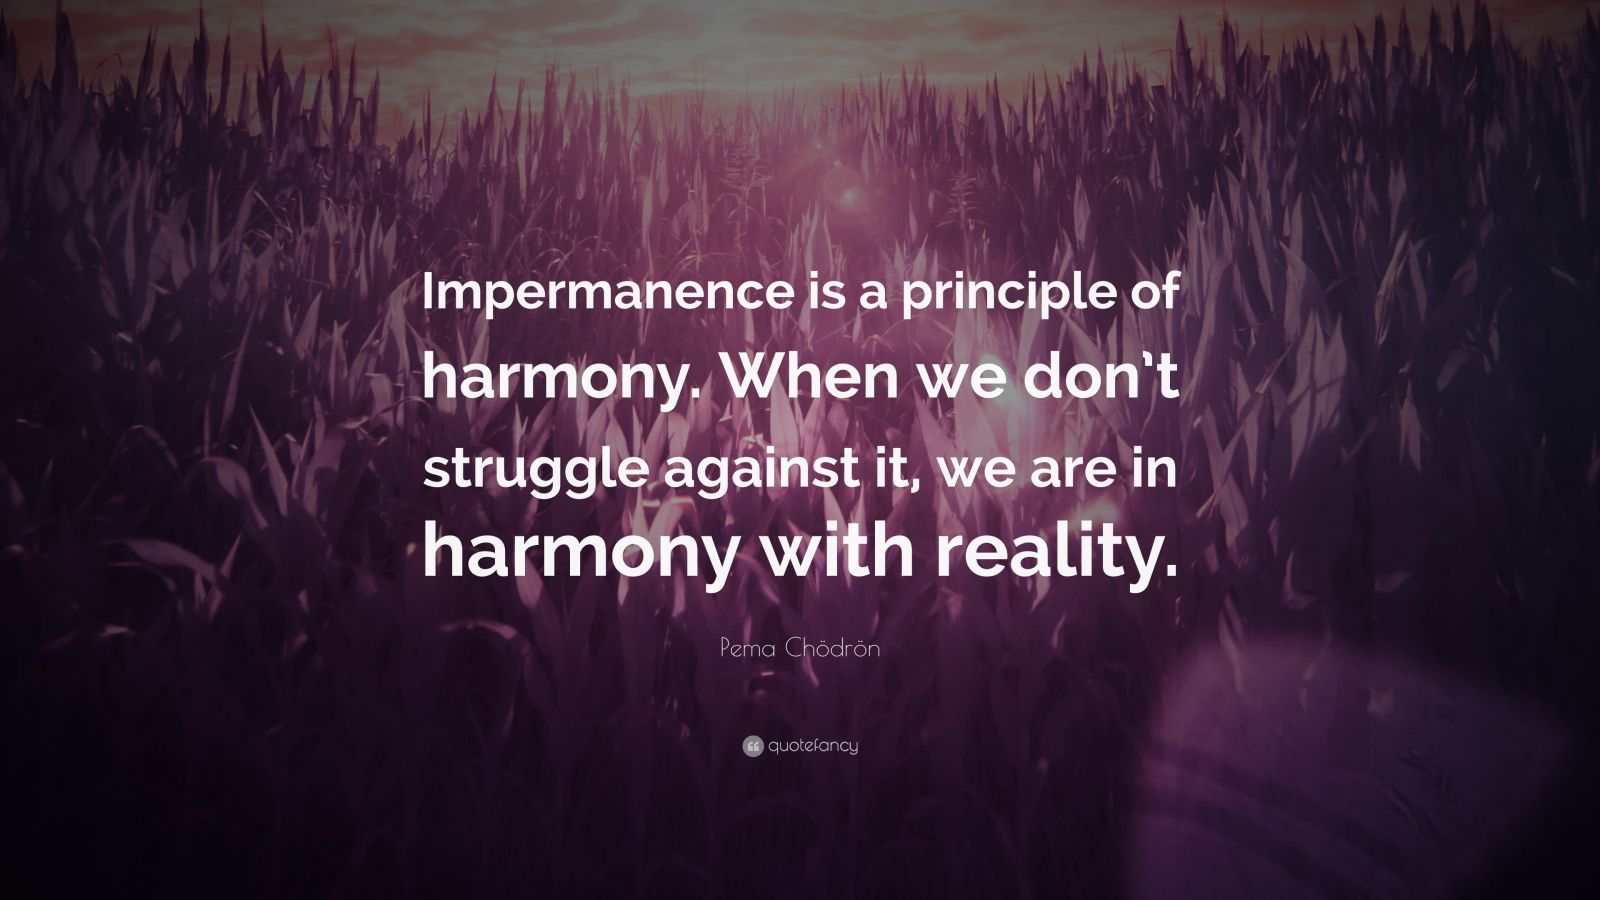 """Pema Chödrön Quote: """"Impermanence is a principle of harmony. When we don't struggle against it, we are in harmony with reality."""""""